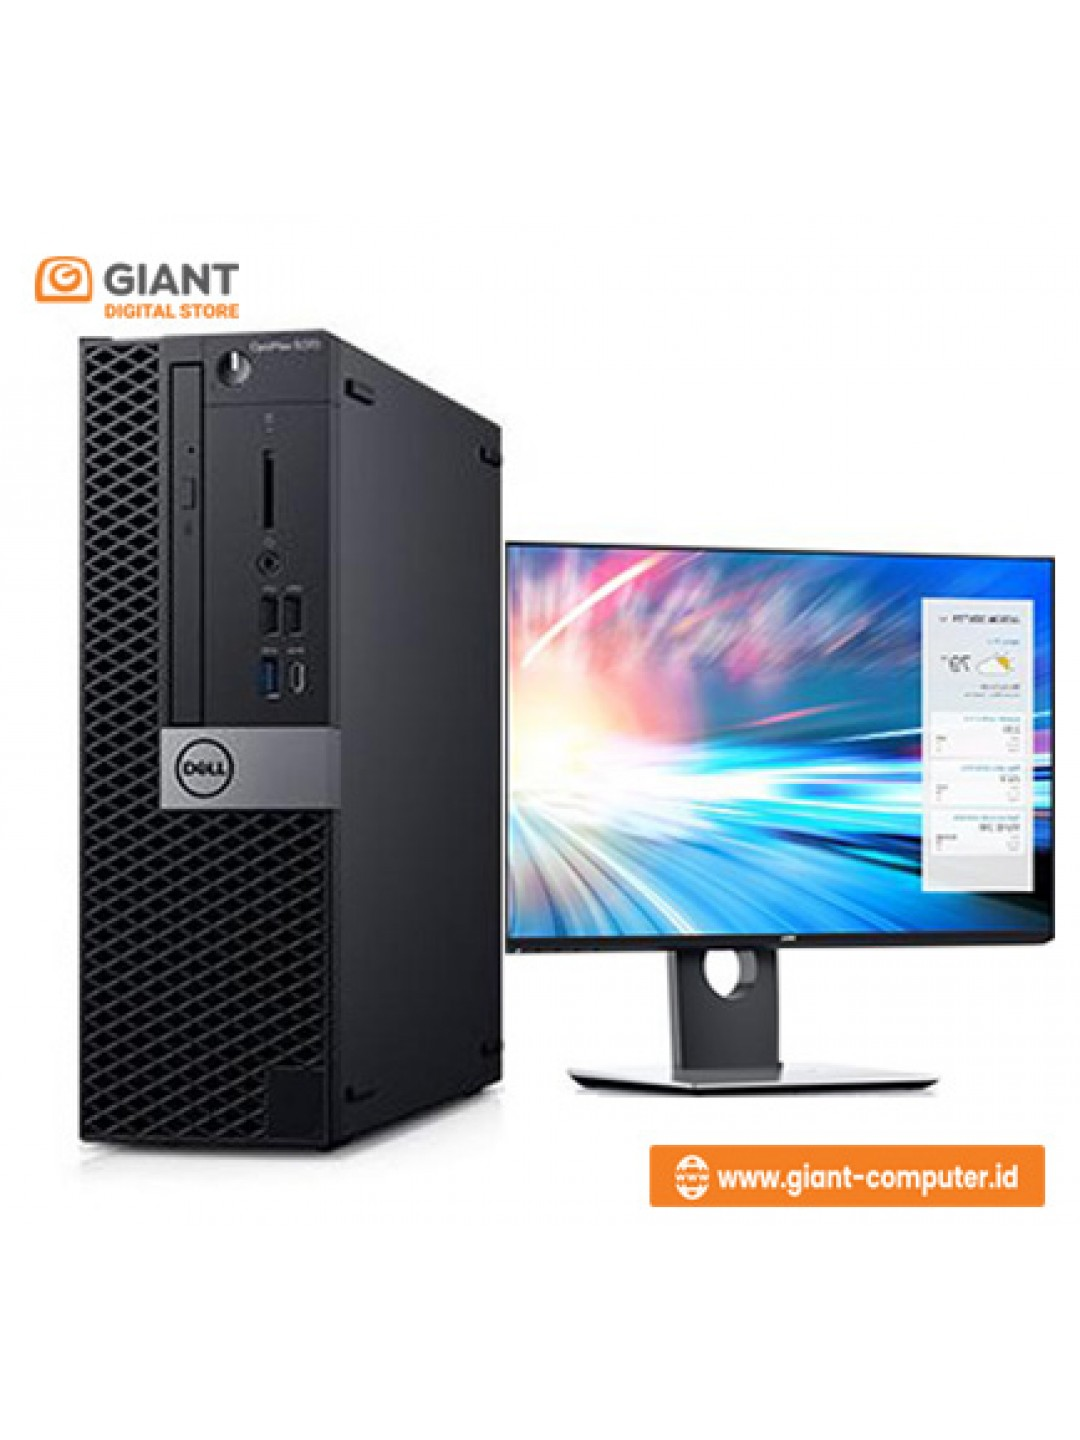 "PC DELL OPT 5070MT (I7-9700 / 8GB / 1TB / LCD 24"" P2419H / DVD RW / VGA 2GB / WIN10 PRO)"